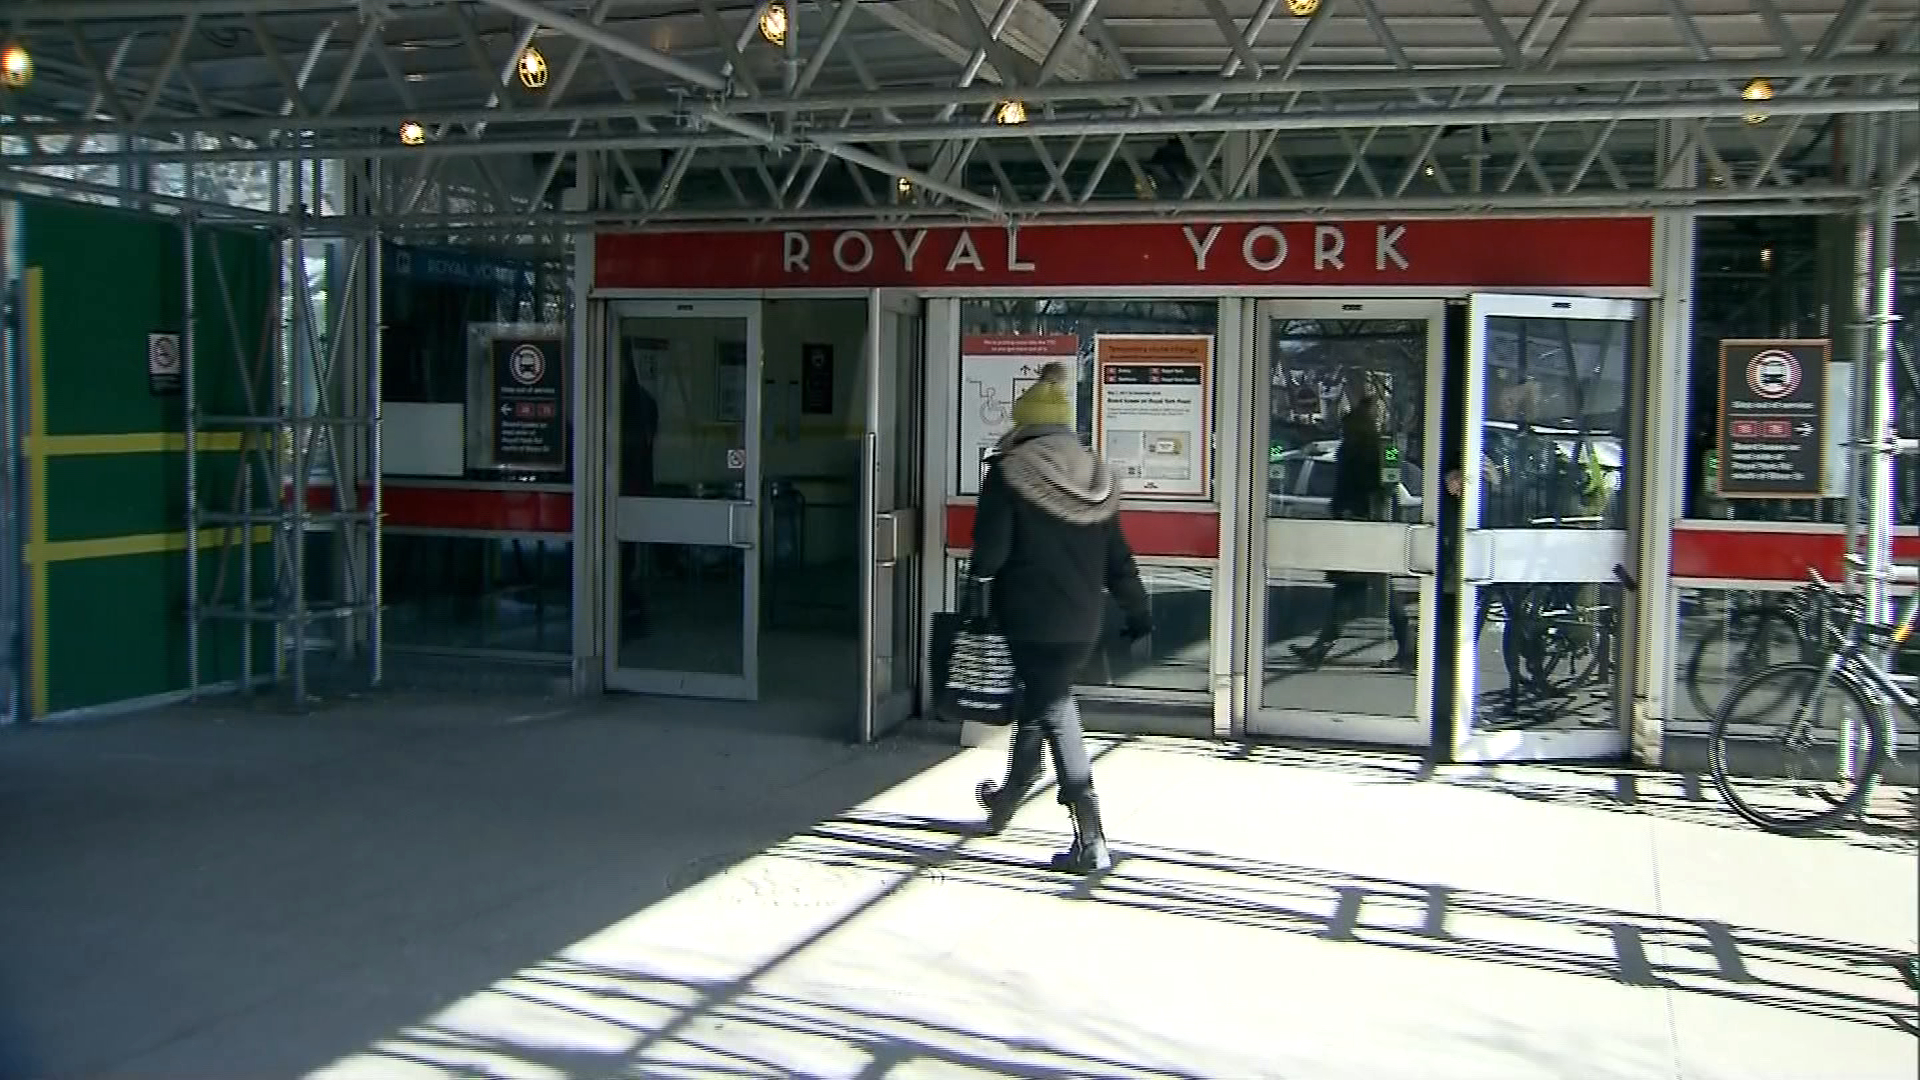 Toronto man charged in connection to Royal York subway station vandalism